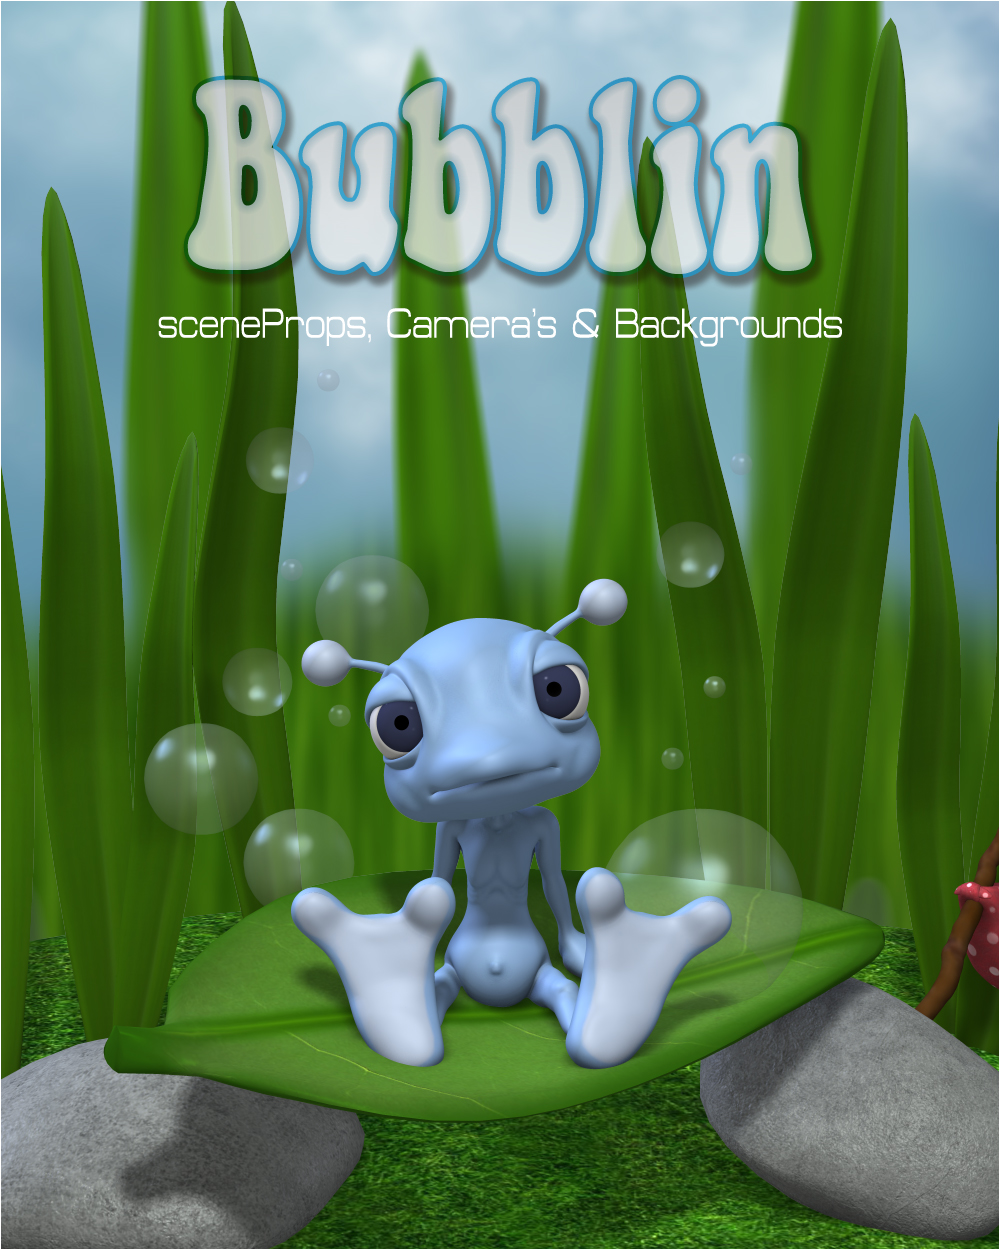 Bubblin - SceneProps